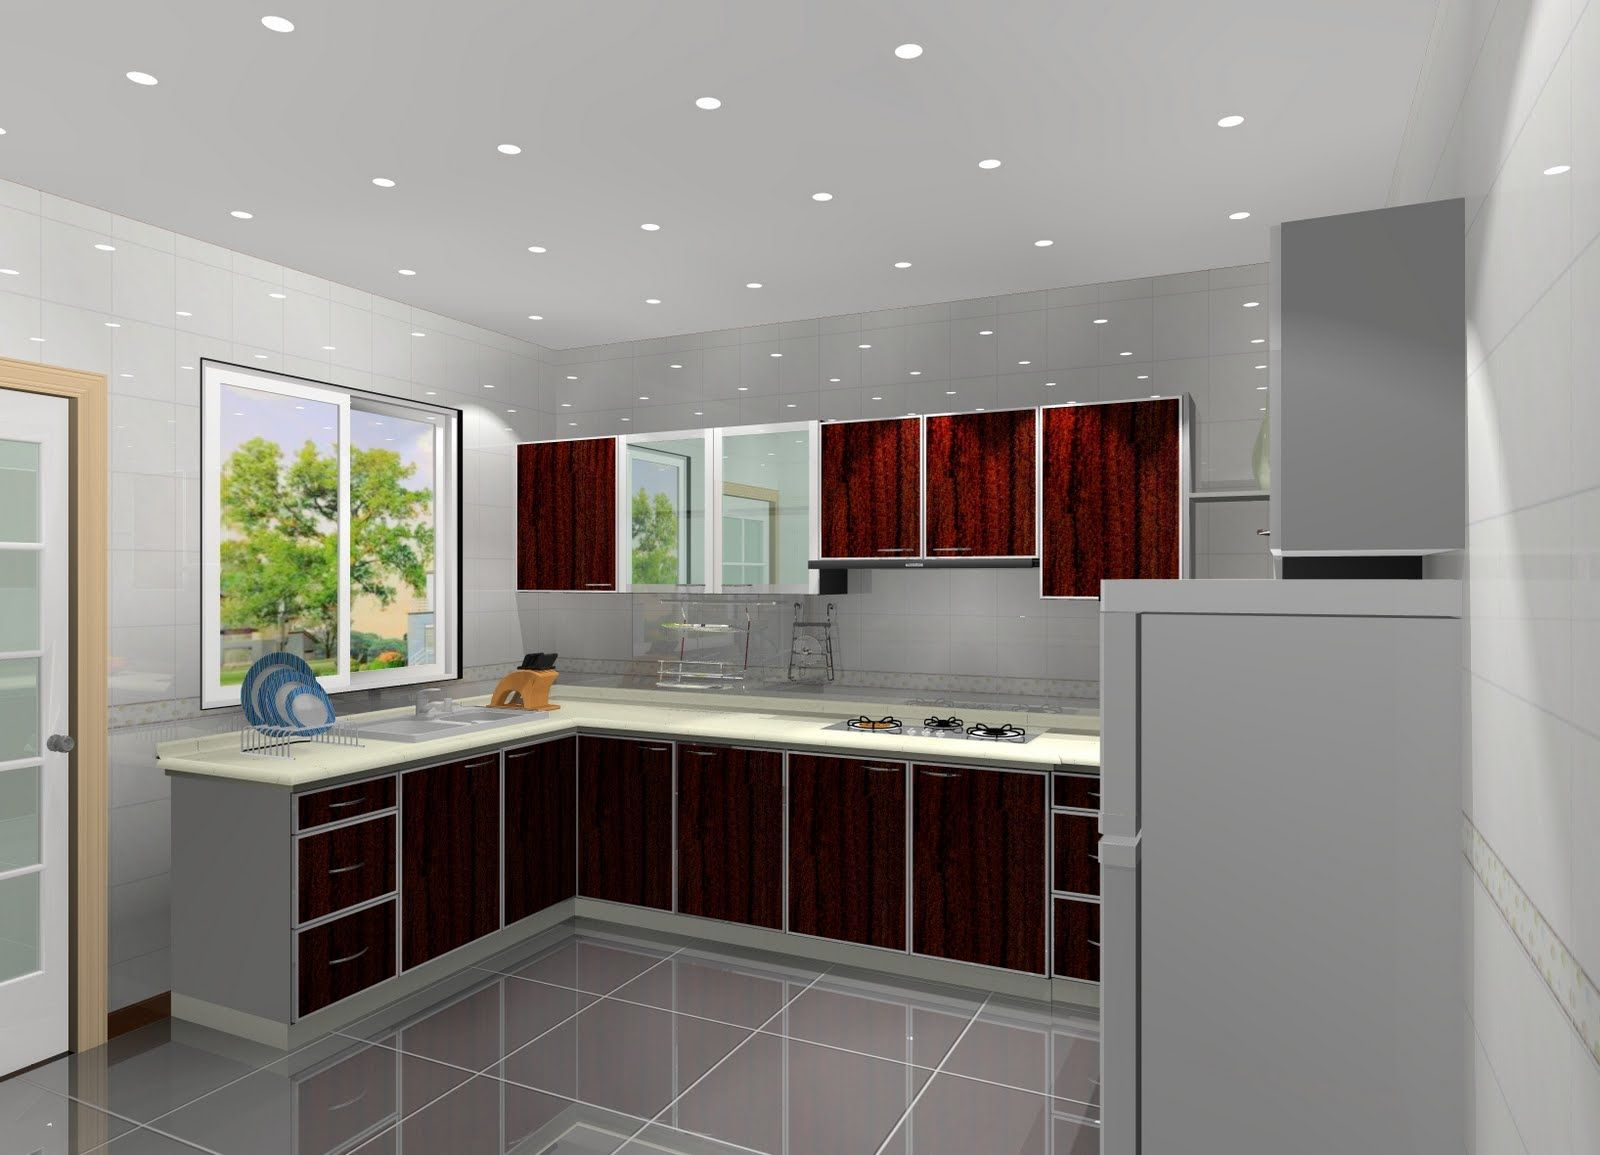 When It Comes To A Kitchen Makeover Research Is Key Tel 0361780160 01126359380 Email Info Kitchen Design Small 3d Kitchen Design Simple Kitchen Design